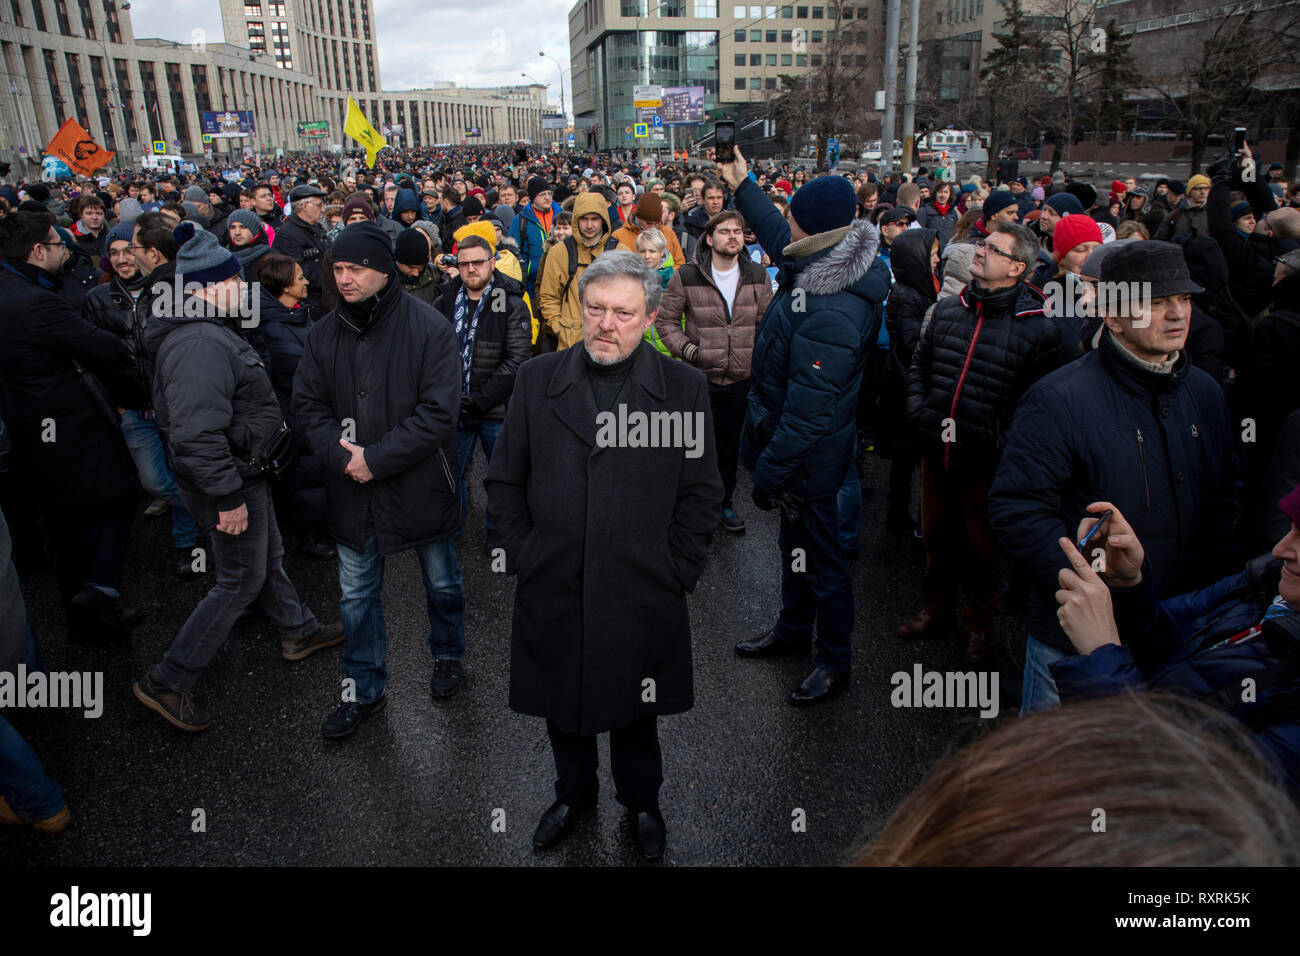 Moscow, Russia. 10th Mar 2019. Politician Grigory Yavlinsky,leader of the social-liberal Yabloko party, takes part in a rally against the isolation of the Russian internet in Sakharova Avenue in Moscow Credit: Nikolay Vinokurov/Alamy Live News - Stock Image